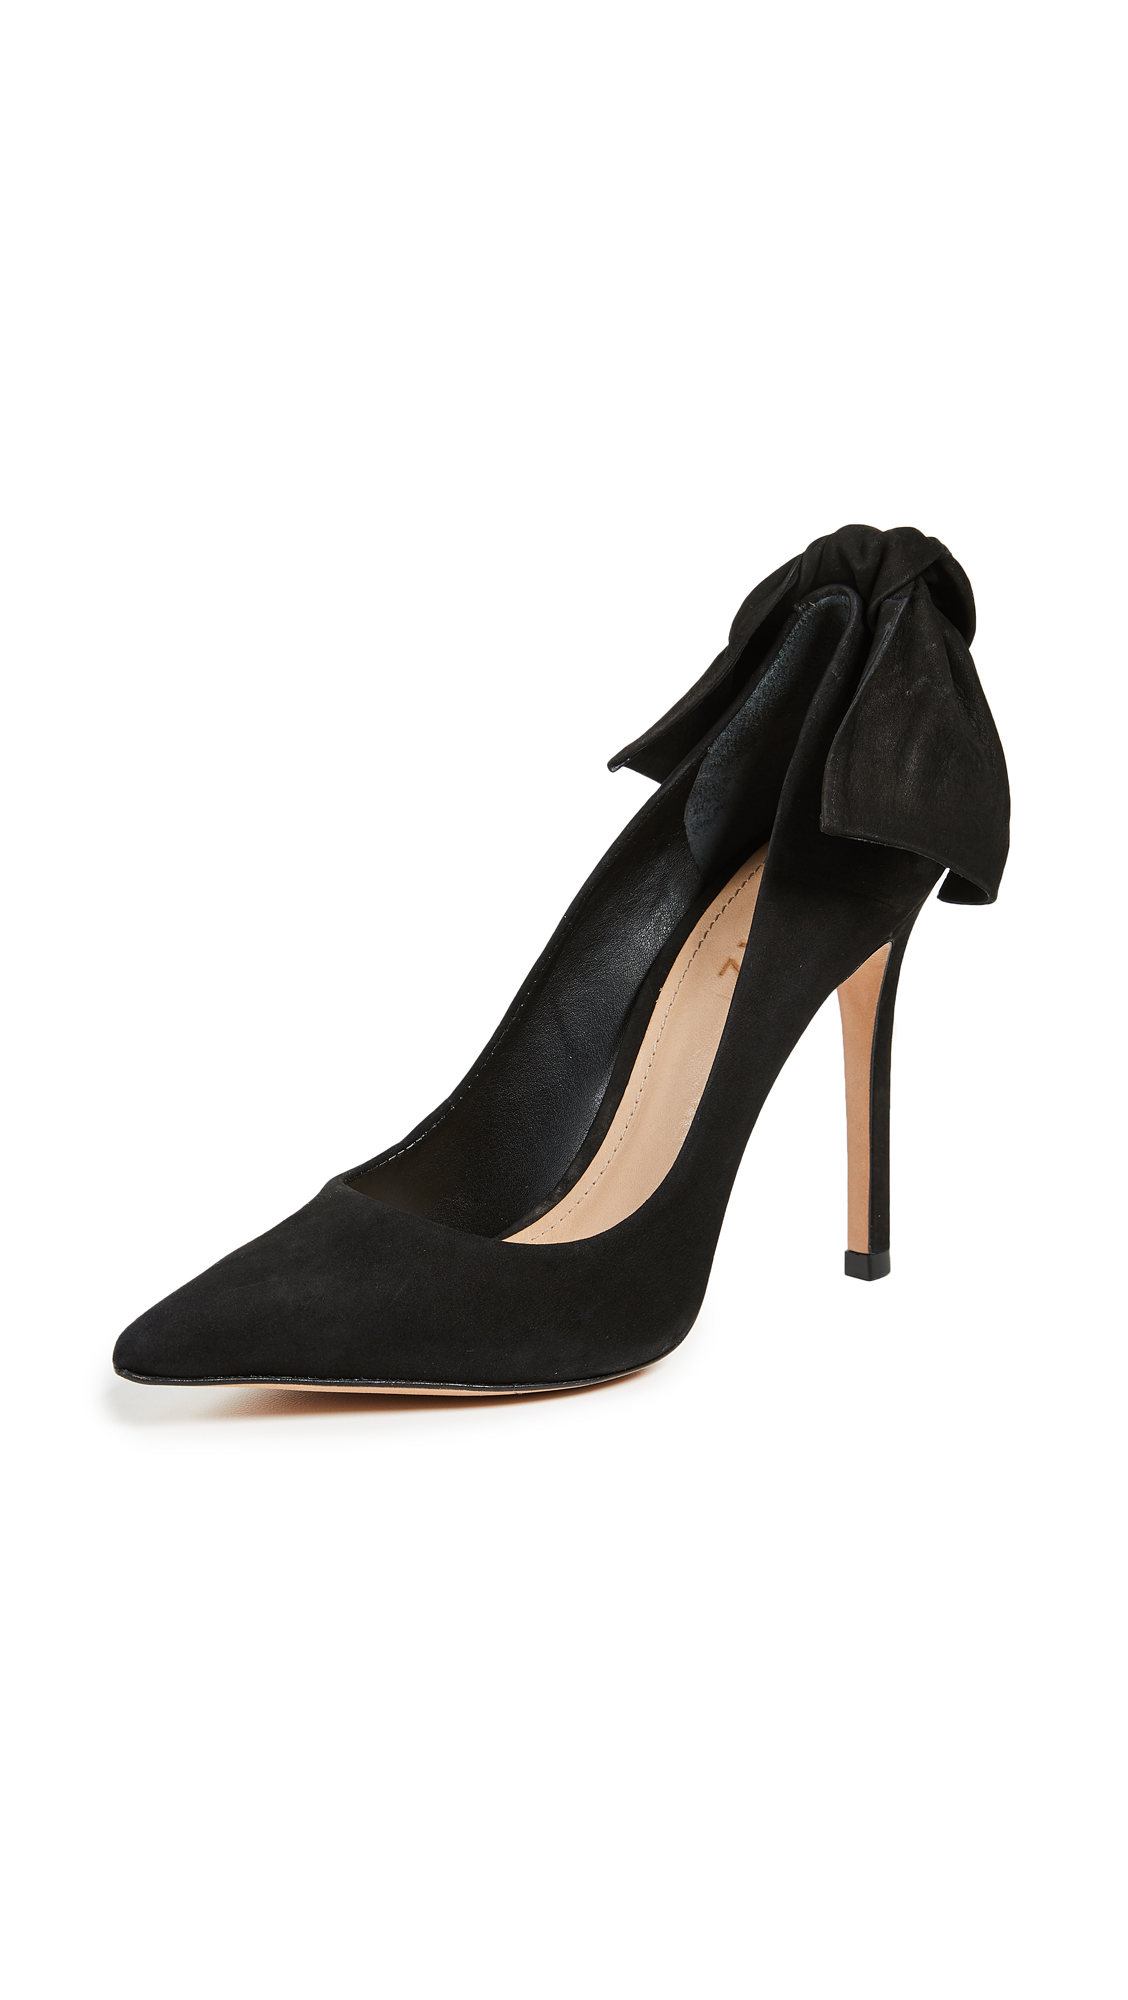 Schutz Blasiana Bow Point Toe Pumps - Black